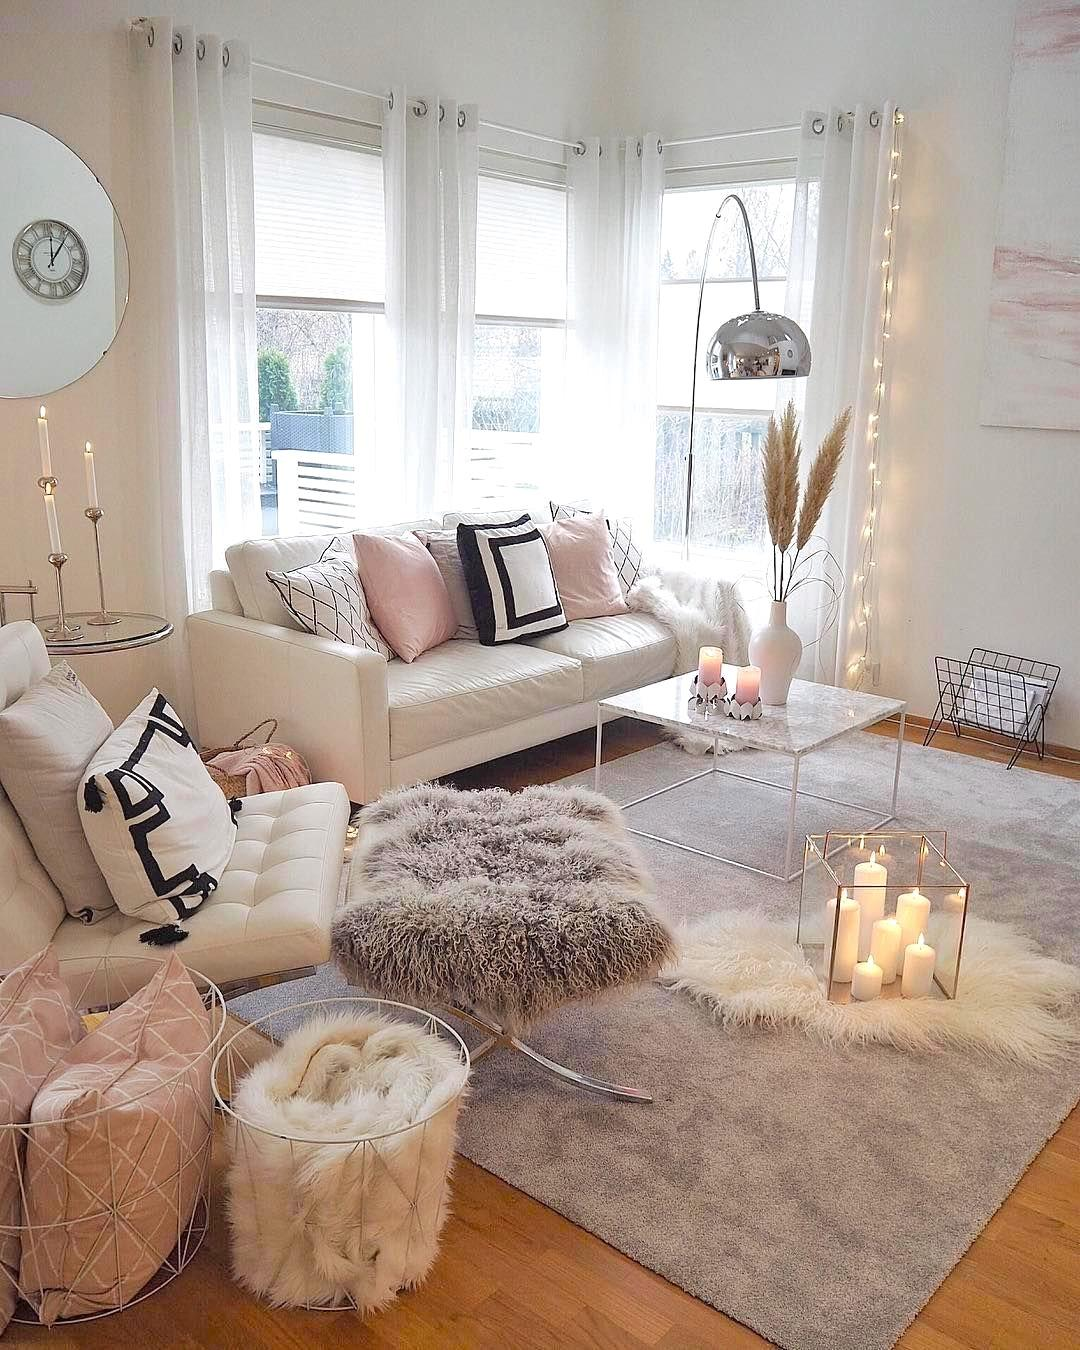 Useful tips and tricks for designing rooms in a cozy fluffy style. Pink tones especially for lovers of everything cute